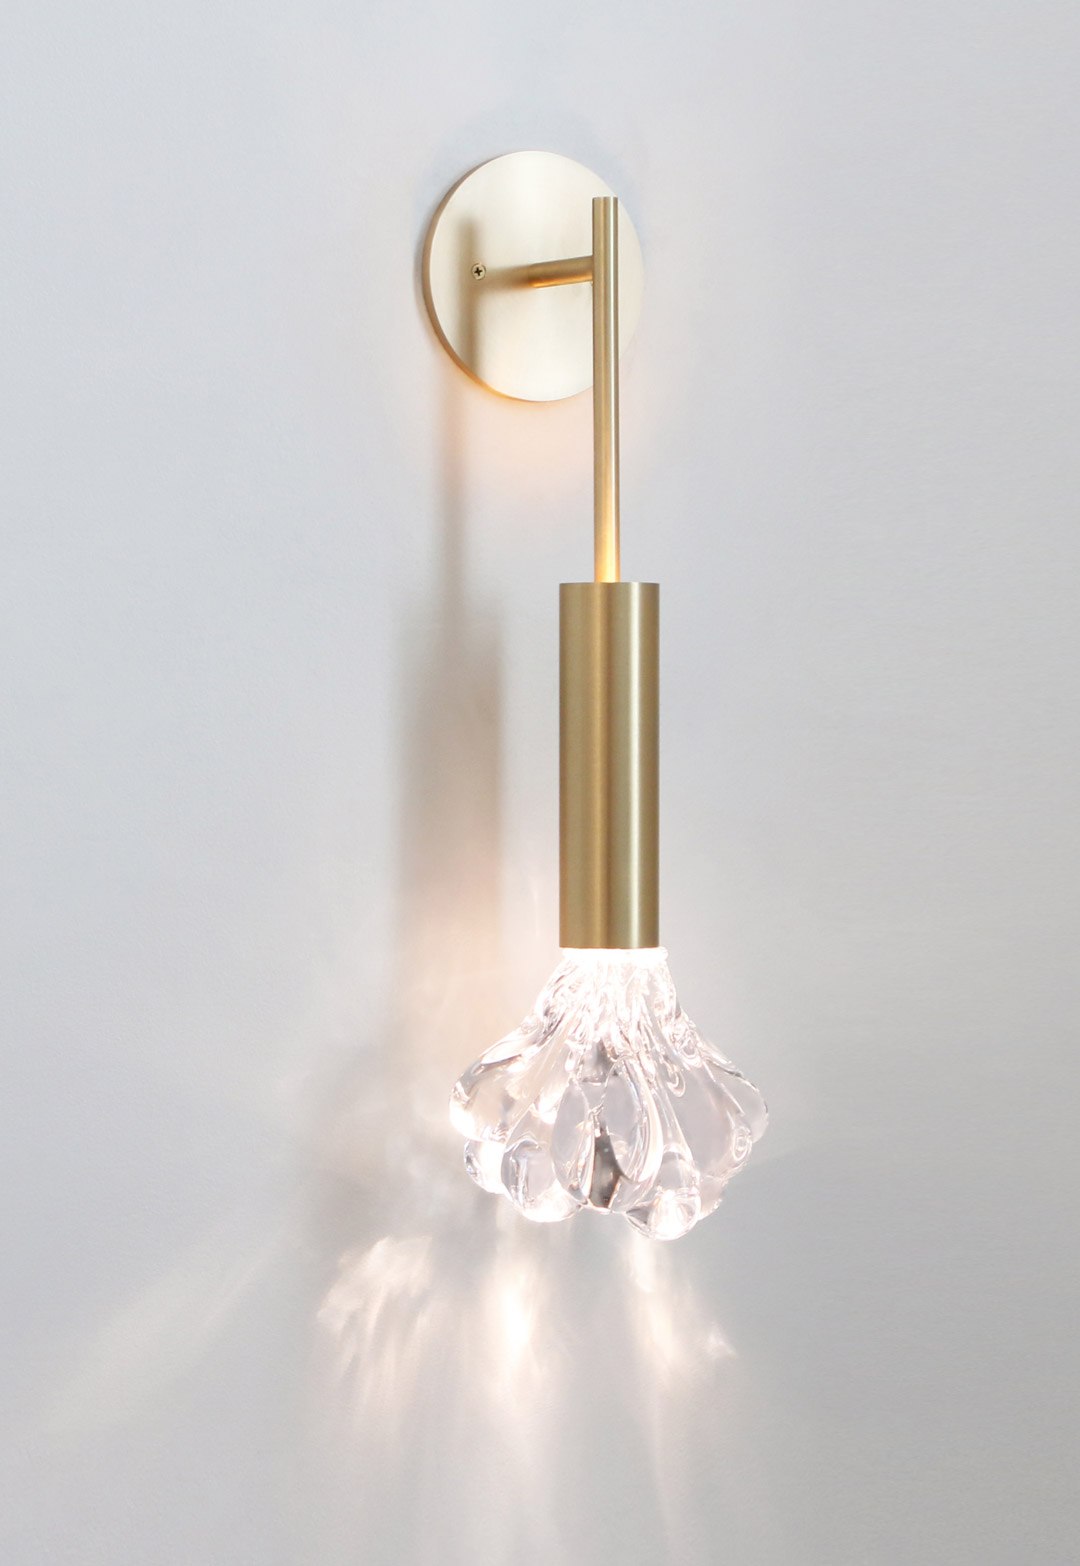 DEW SCONCE Clear glass, brushed brass metal finish